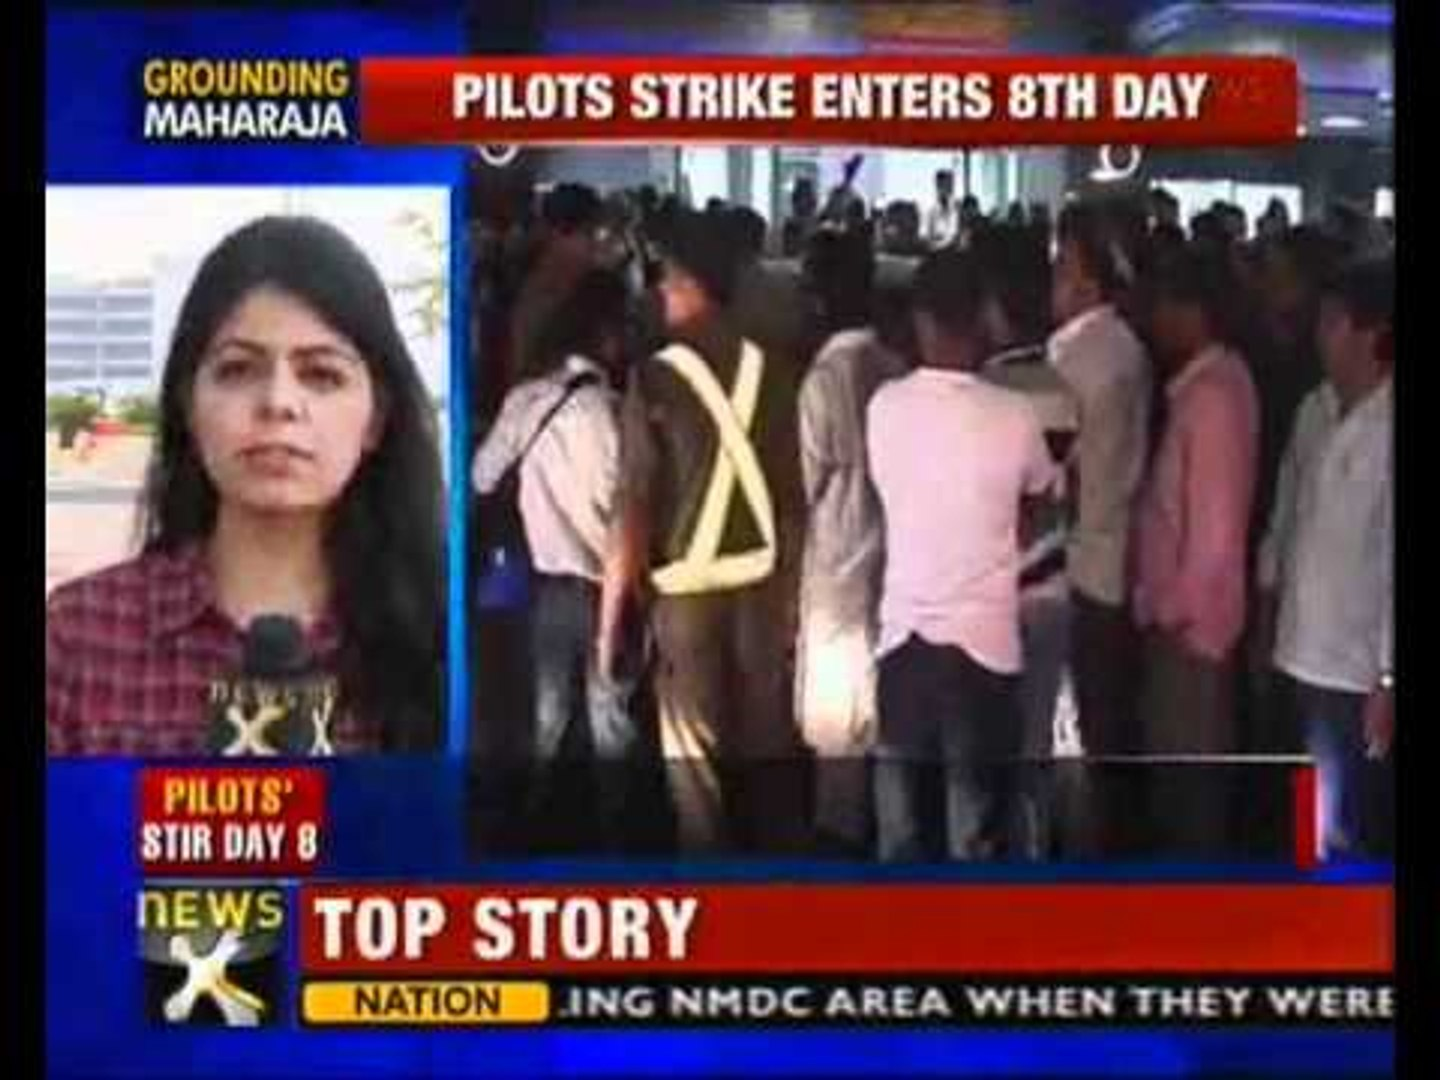 Pilots' strike enters 8th day, Air India operations badly hit - NewsX